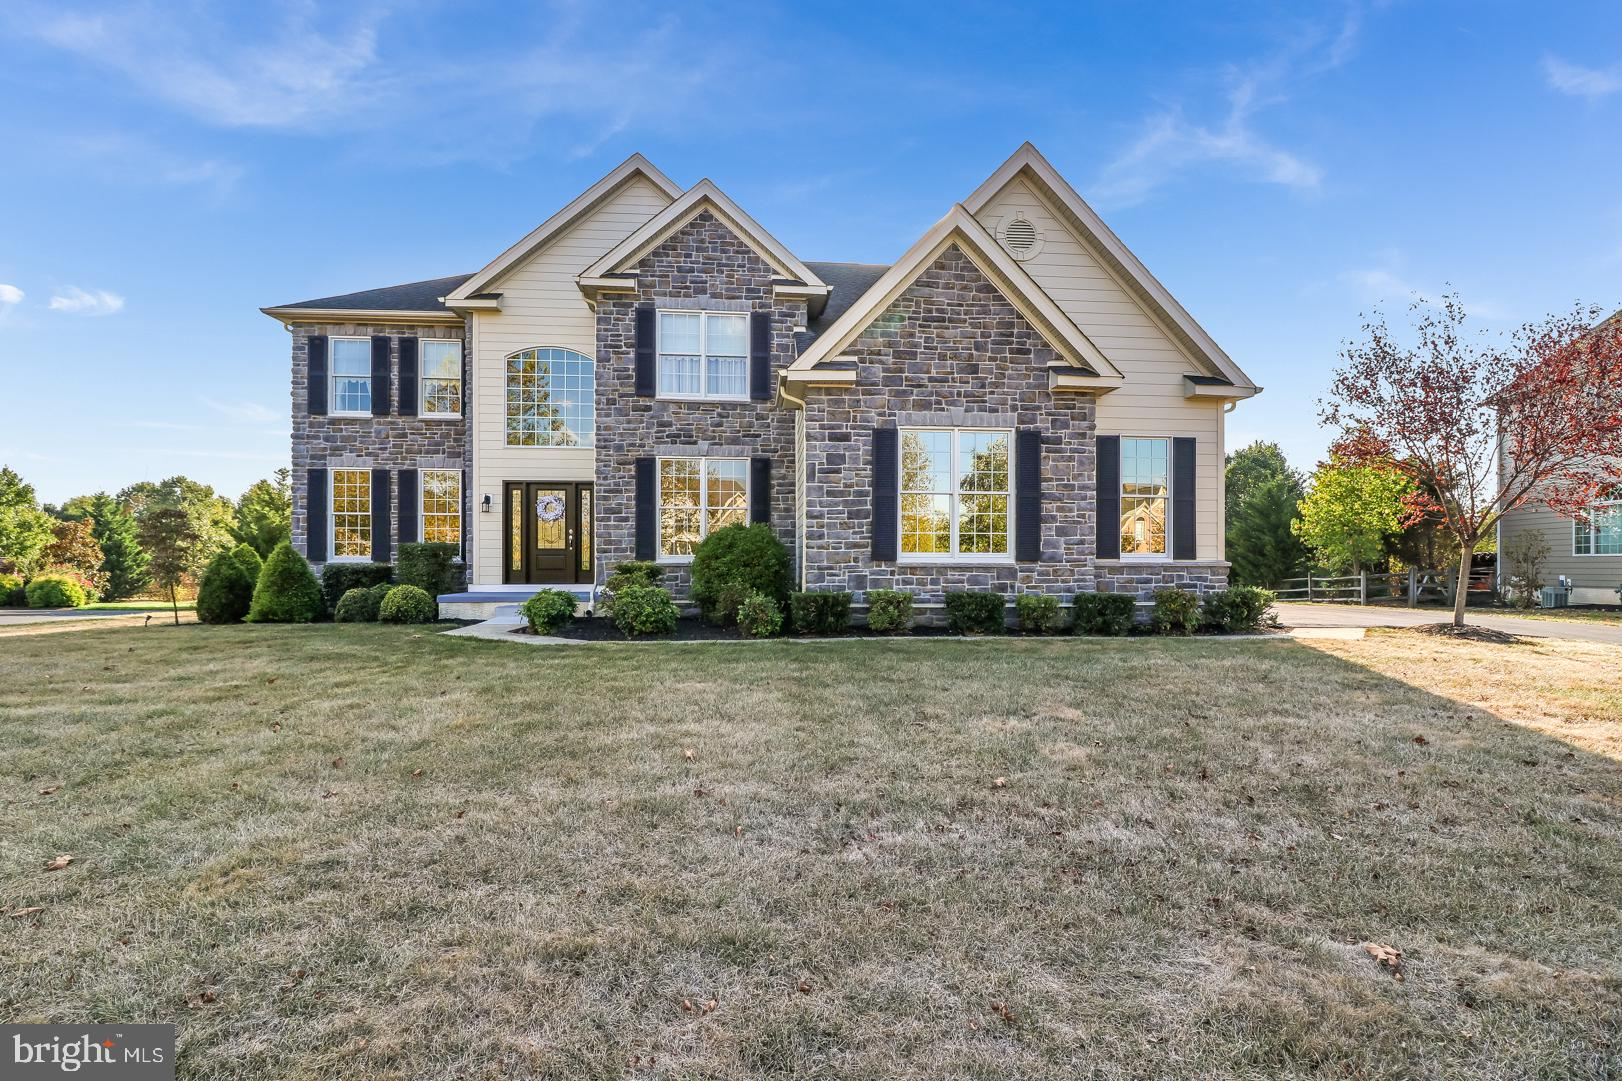 Stunning 4BR/4.1BA Elkins model with brand-new siding and 3-car turned garage available in popular Red Lion Chase! Walk into the elegant 2-story foyer with turned staircase and note the rich hardwood flooring that leads to the oversized eat-in kitchen with walk-in pantry, huge center island, and gorgeous cherry cabinets. The open floor plan lends itself to entertaining with its massive living/dining room combination; spectacular sunken two-story family room with a magnificent wall of windows and stone fireplace; and giant solarium that leads to a large composite deck that overlooks a .56-acre flat lot that backs to open space. Take the back staircase up to the 2nd floor and check out the enormous master bedroom with sitting area, huge master bath with garden tub and his & hers sinks, and a walk-in closet that would make Oprah's knees weak! Head down the hall for the 2nd and 3rd bedrooms joined by a large Jack & Jill bathroom and the 4th bedroom with its own private bath. The finished basement features a gorgeous granite bar with tile backsplash, exercise room, and full bath, plus extra storage for all of your treasures!